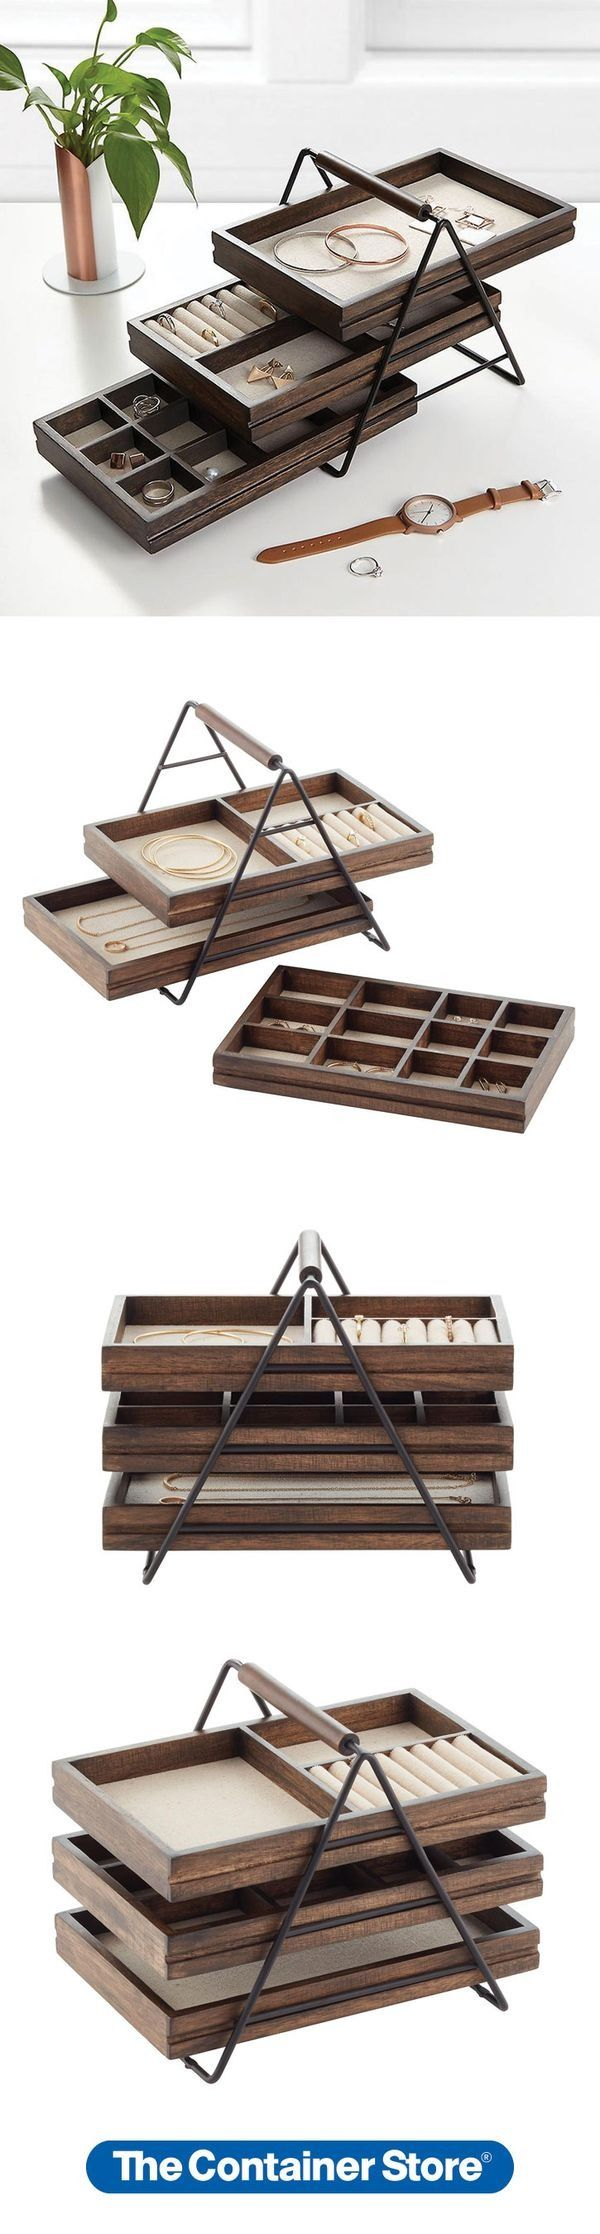 Umbra Terrace Jewelry Organizer Rolls Dresser and Minimal